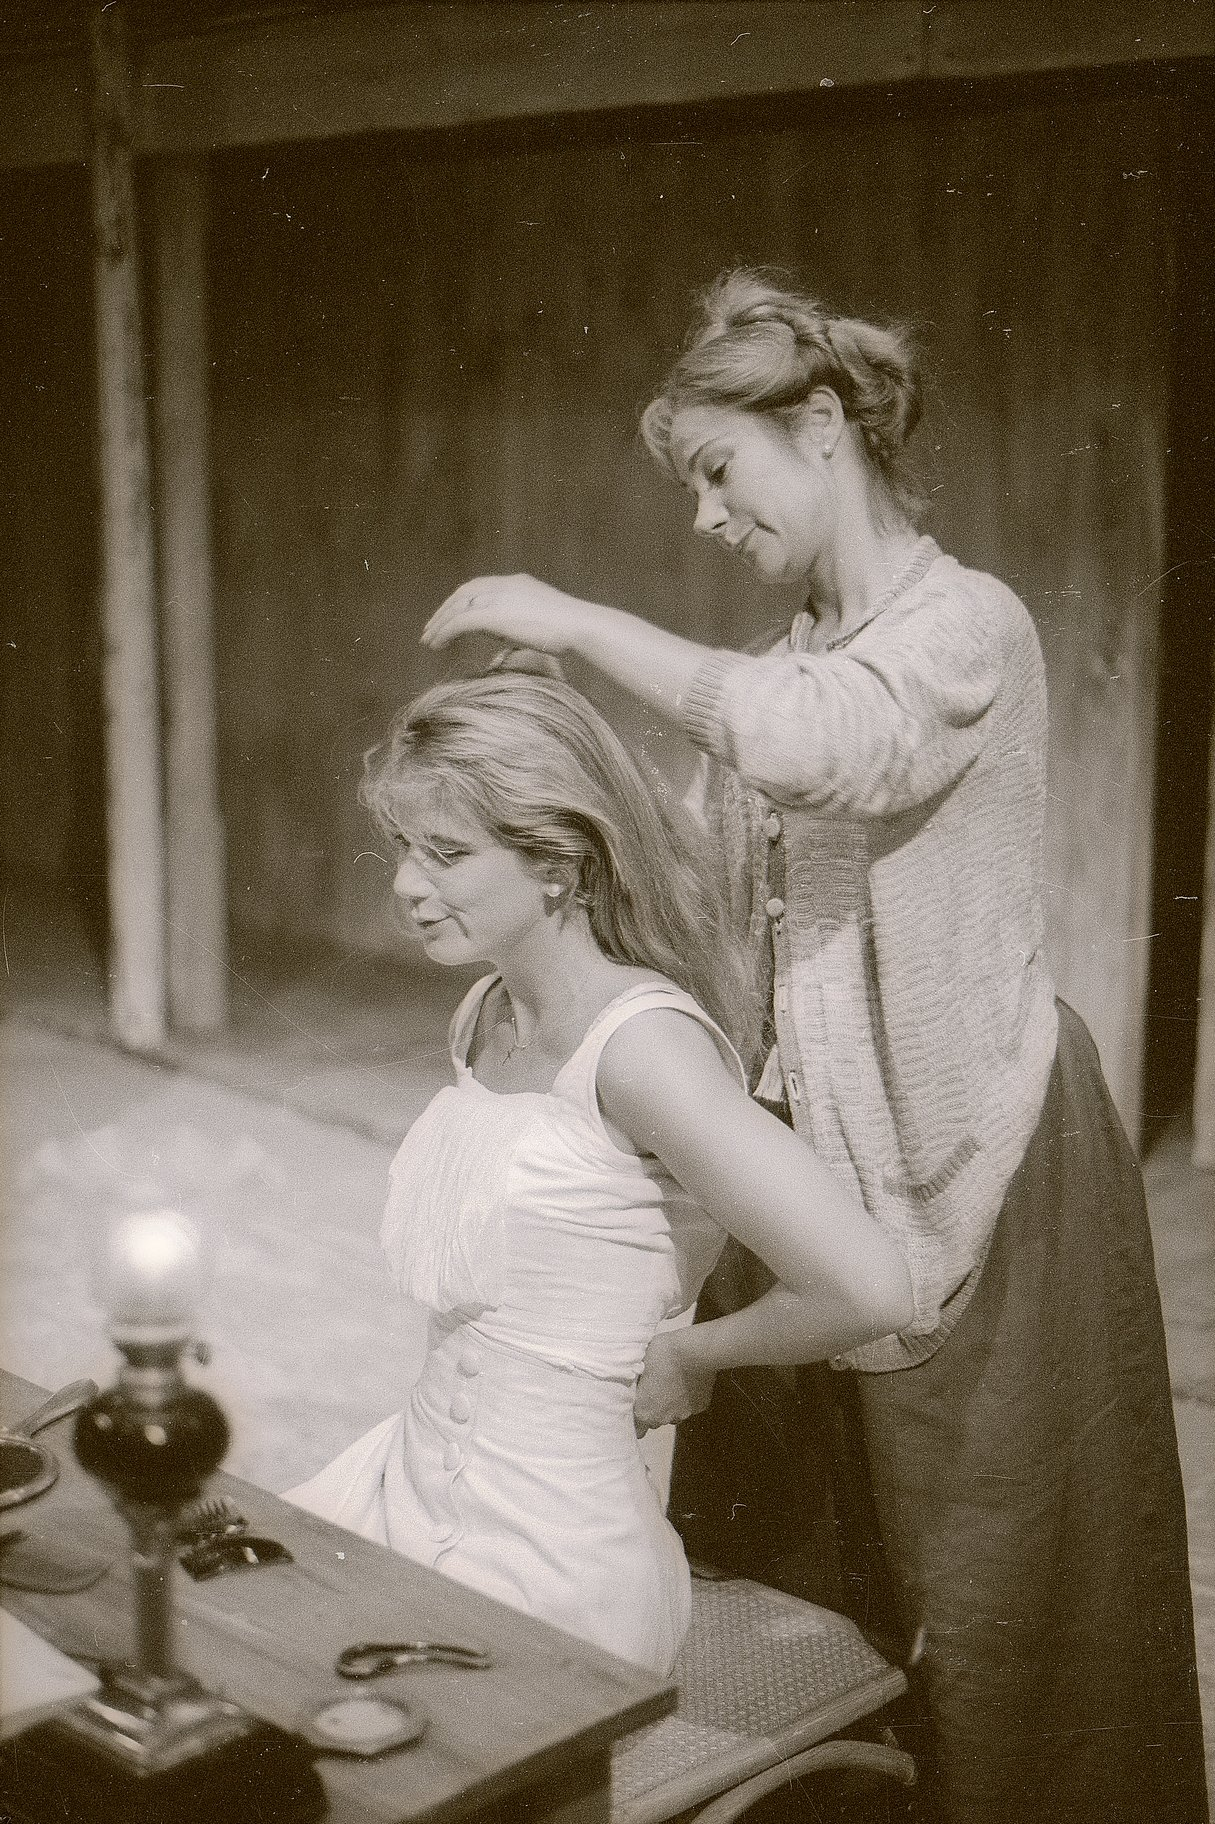 Emilia prepares Desdemona for bed.